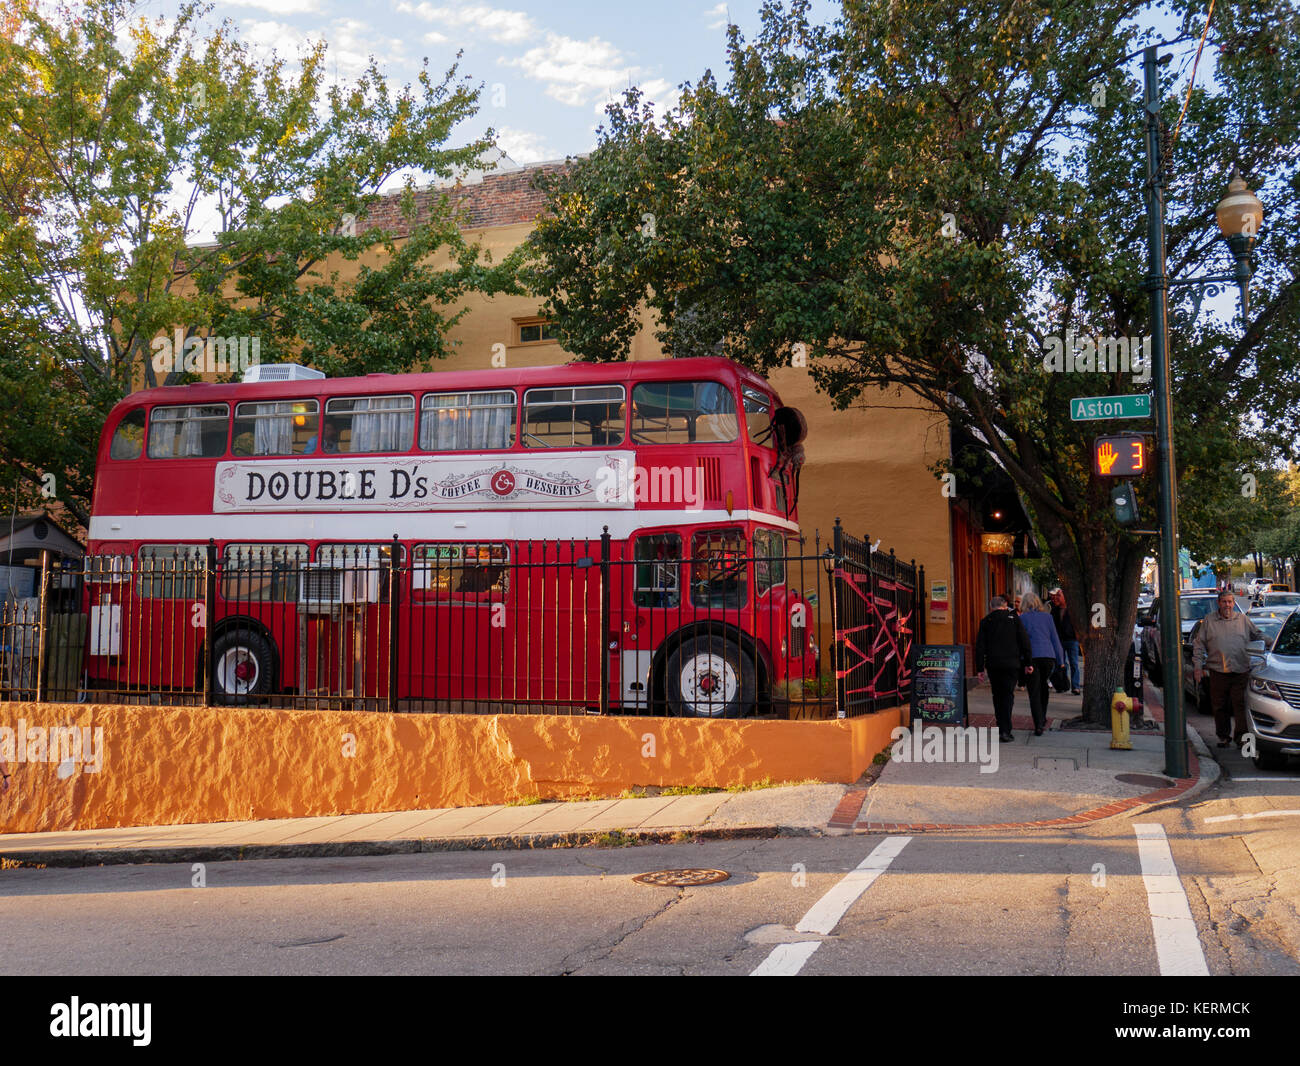 London style double decker bus repurposed as coffee shop. Asheville, North Carolina. - Stock Image